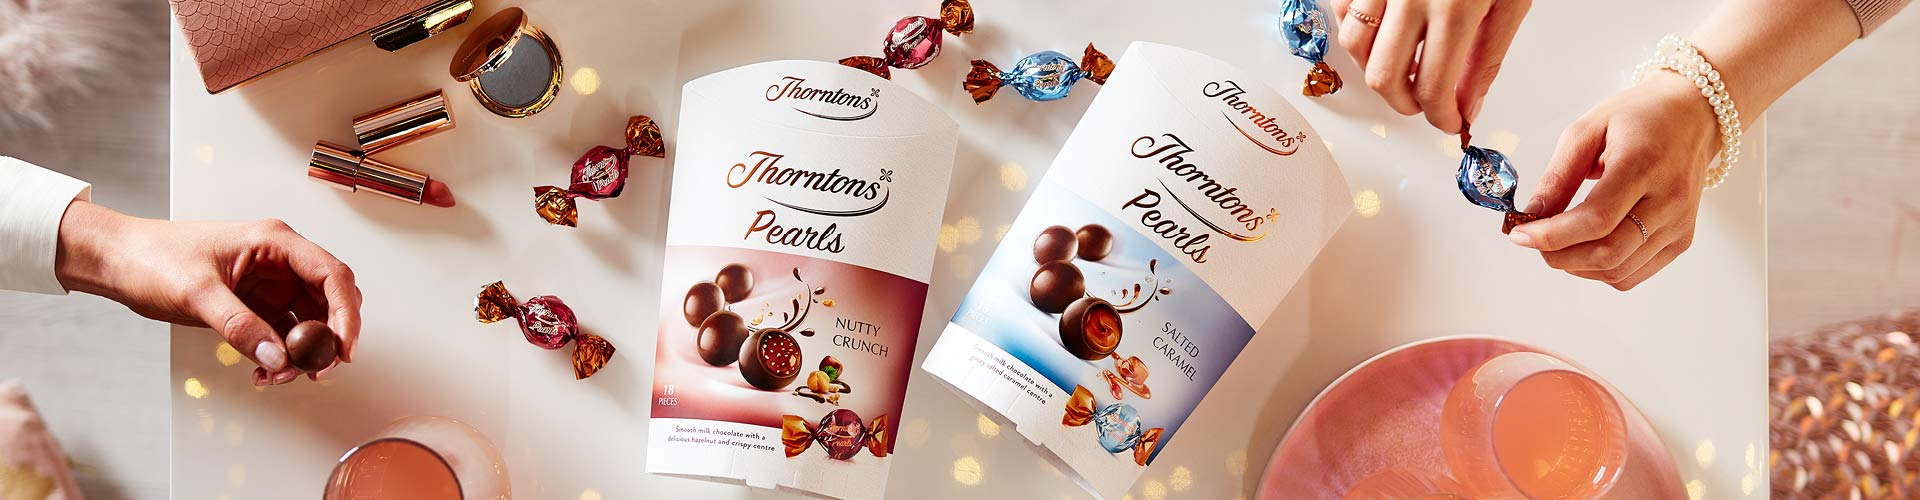 Introducing Thorntons Pearls, a chic treat made especially for sharing. Wrapped in a shell of our deliciously smooth milk chocolate, you'll find a surprisingly luxurious centre hidden inside. With Nutty Crunch and Gooey Caramel to choose from it's almost impossible to decide